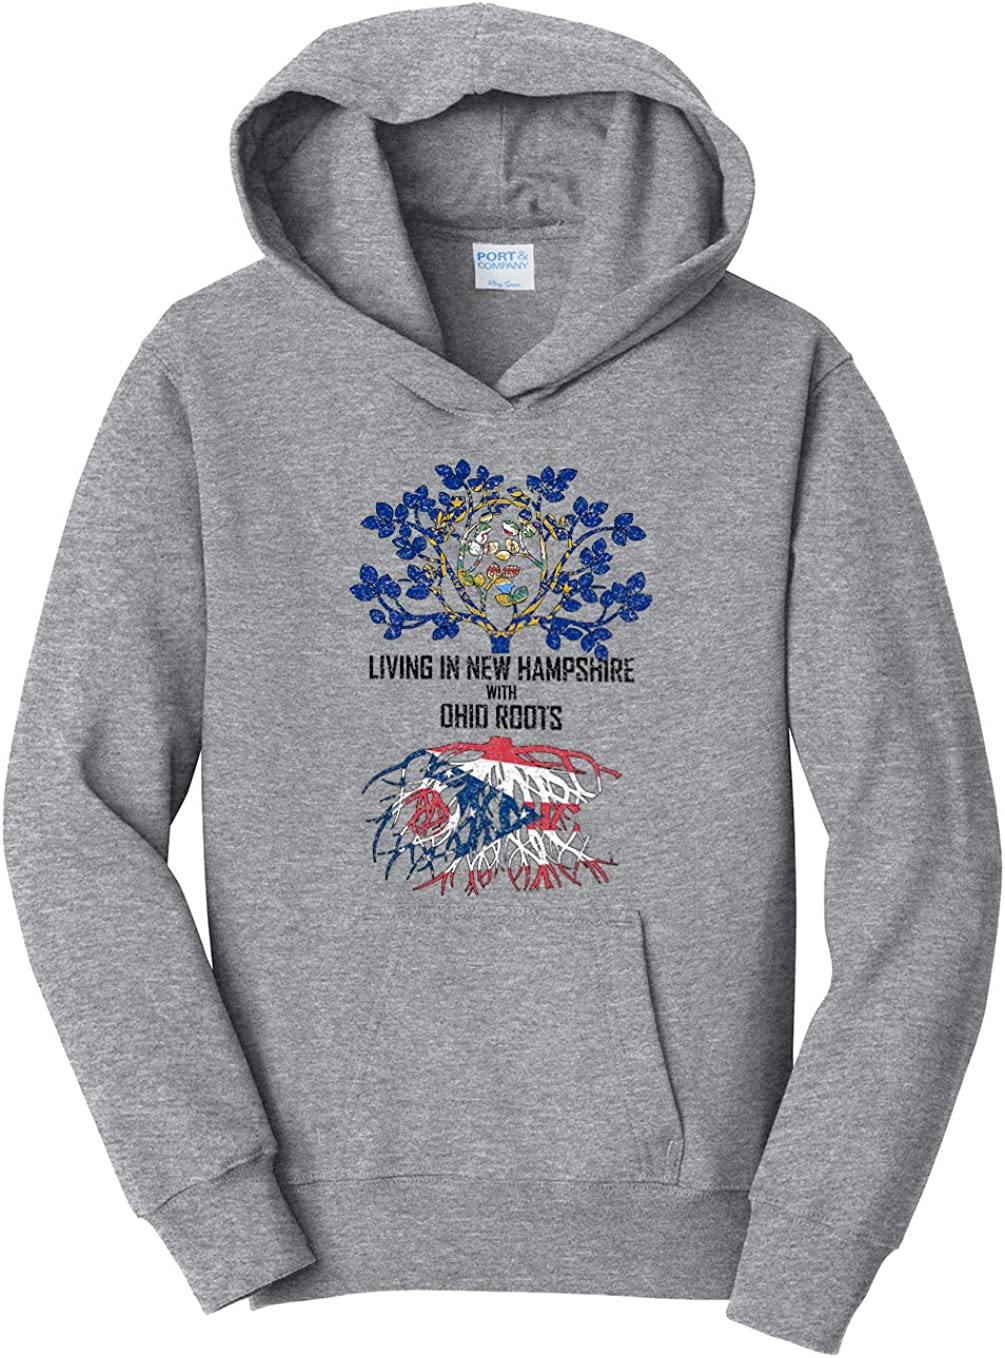 Tenacitee Girls Living in New Hampshire with Ohio Roots Hooded Sweatshirt